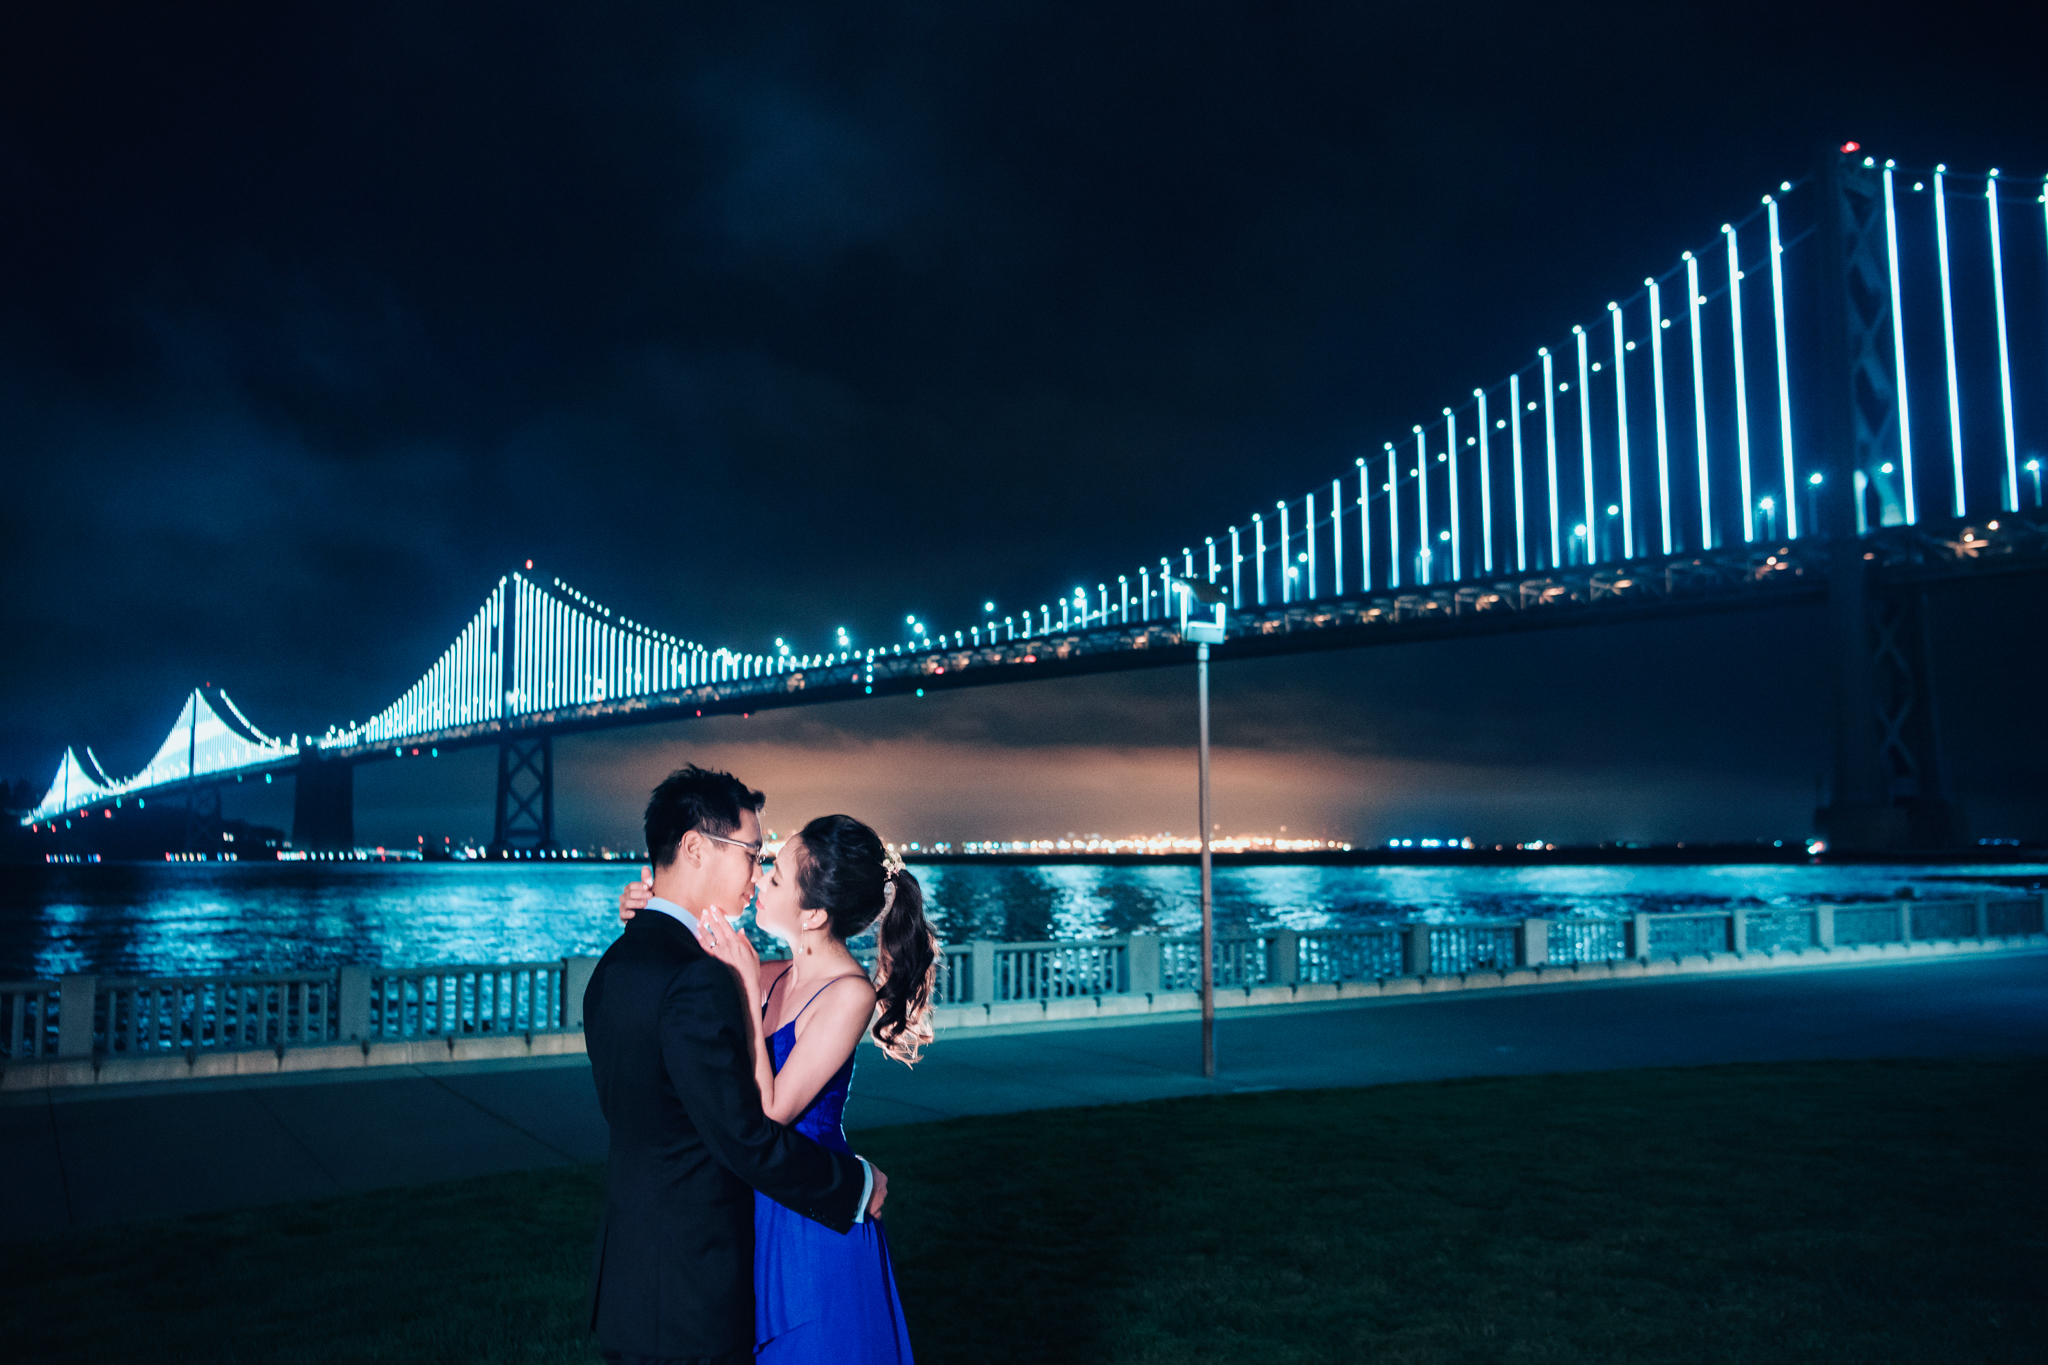 藝術婚禮, Donfer, Donfer Photography, EASTERN WEDDING, San Francisco Pre-Wedding , 海外婚紗, 舊金山海外婚紗, 藝術婚紗